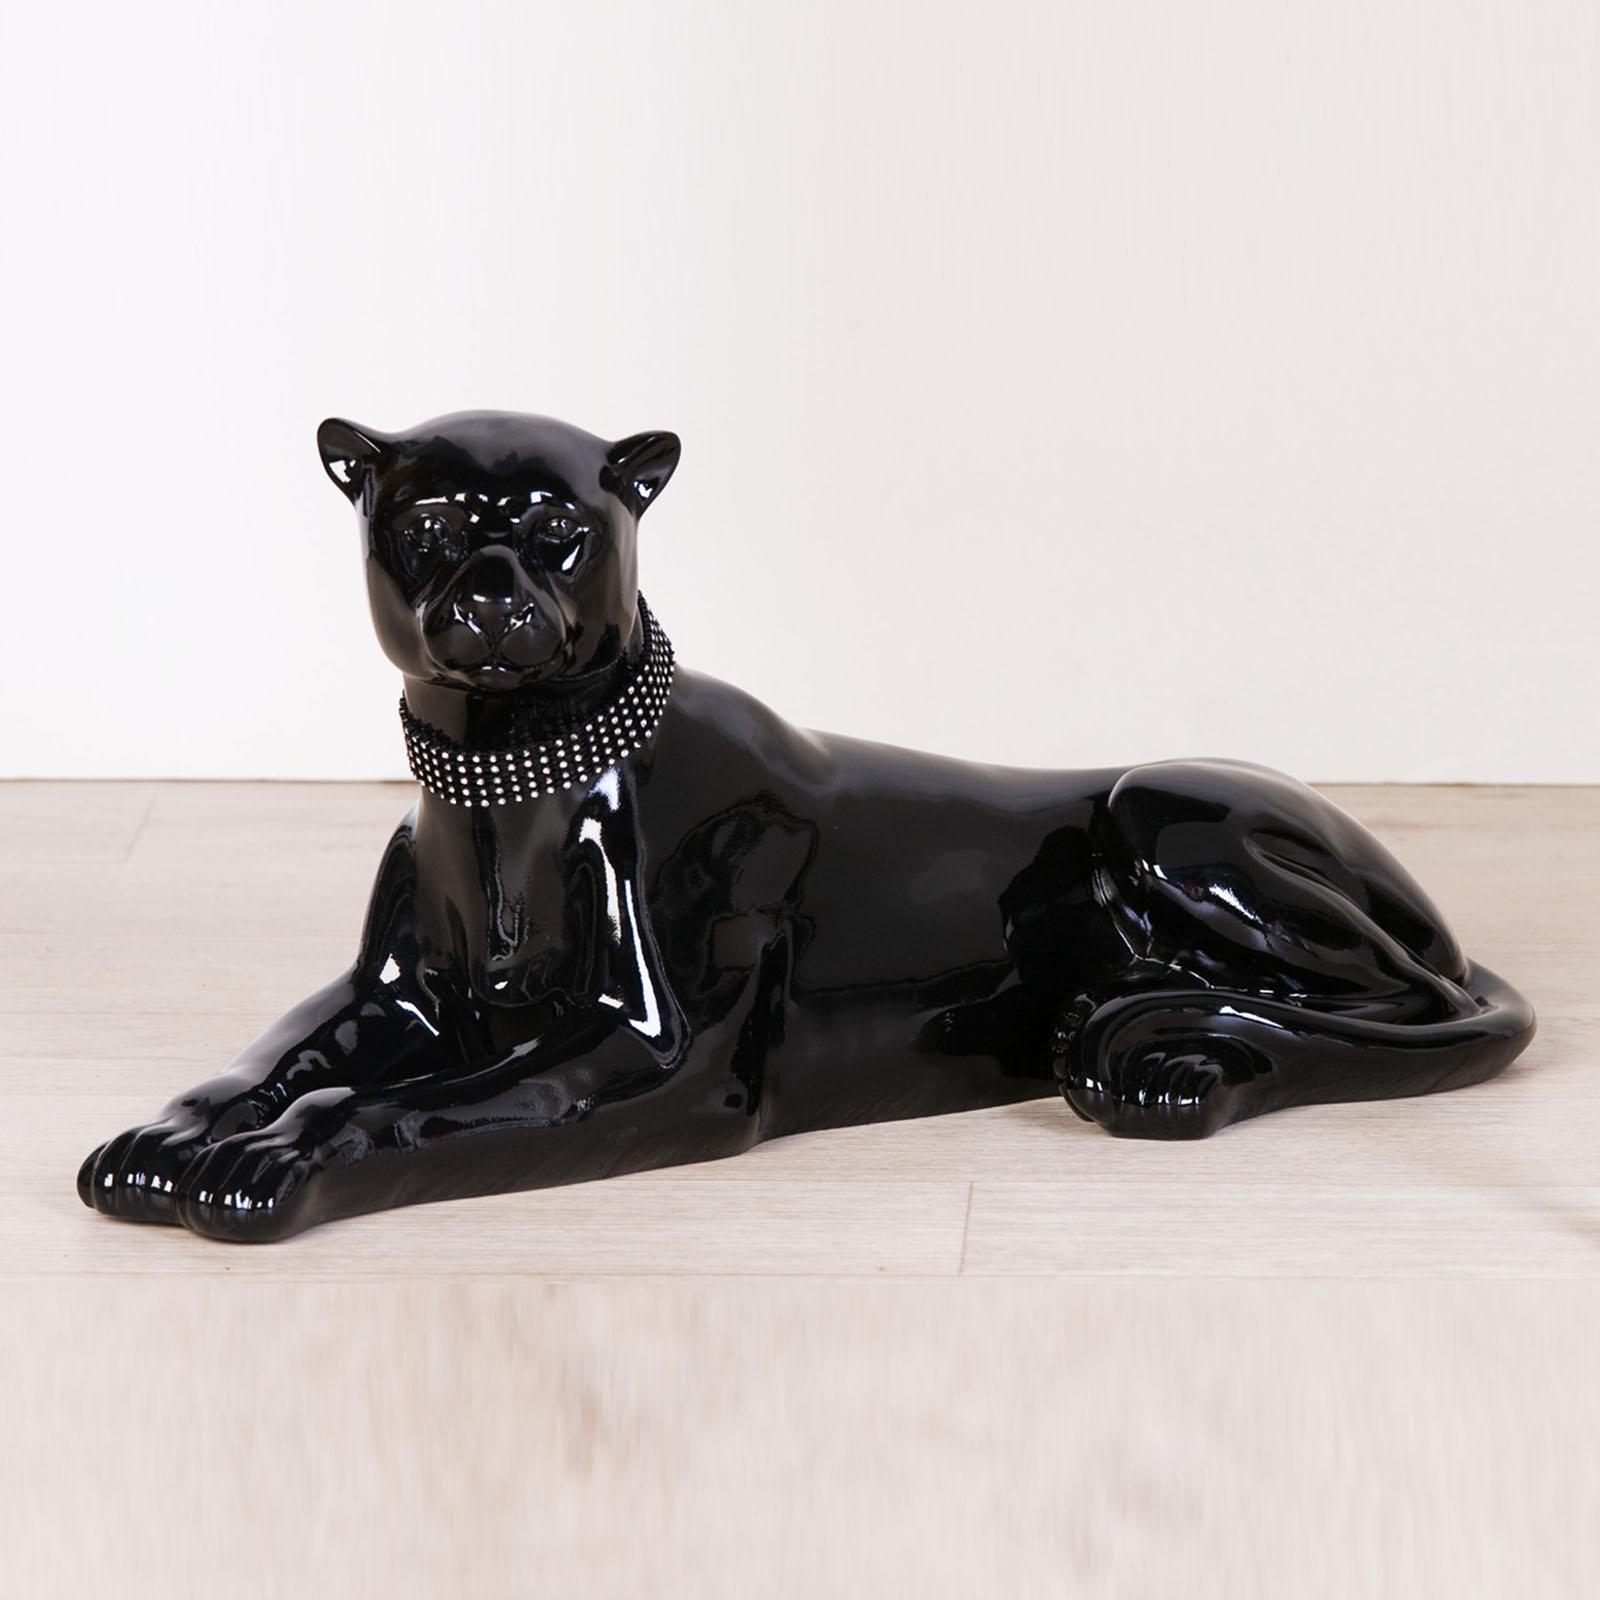 Design figurine panther black luxury statue sculpture Home decor sculptures